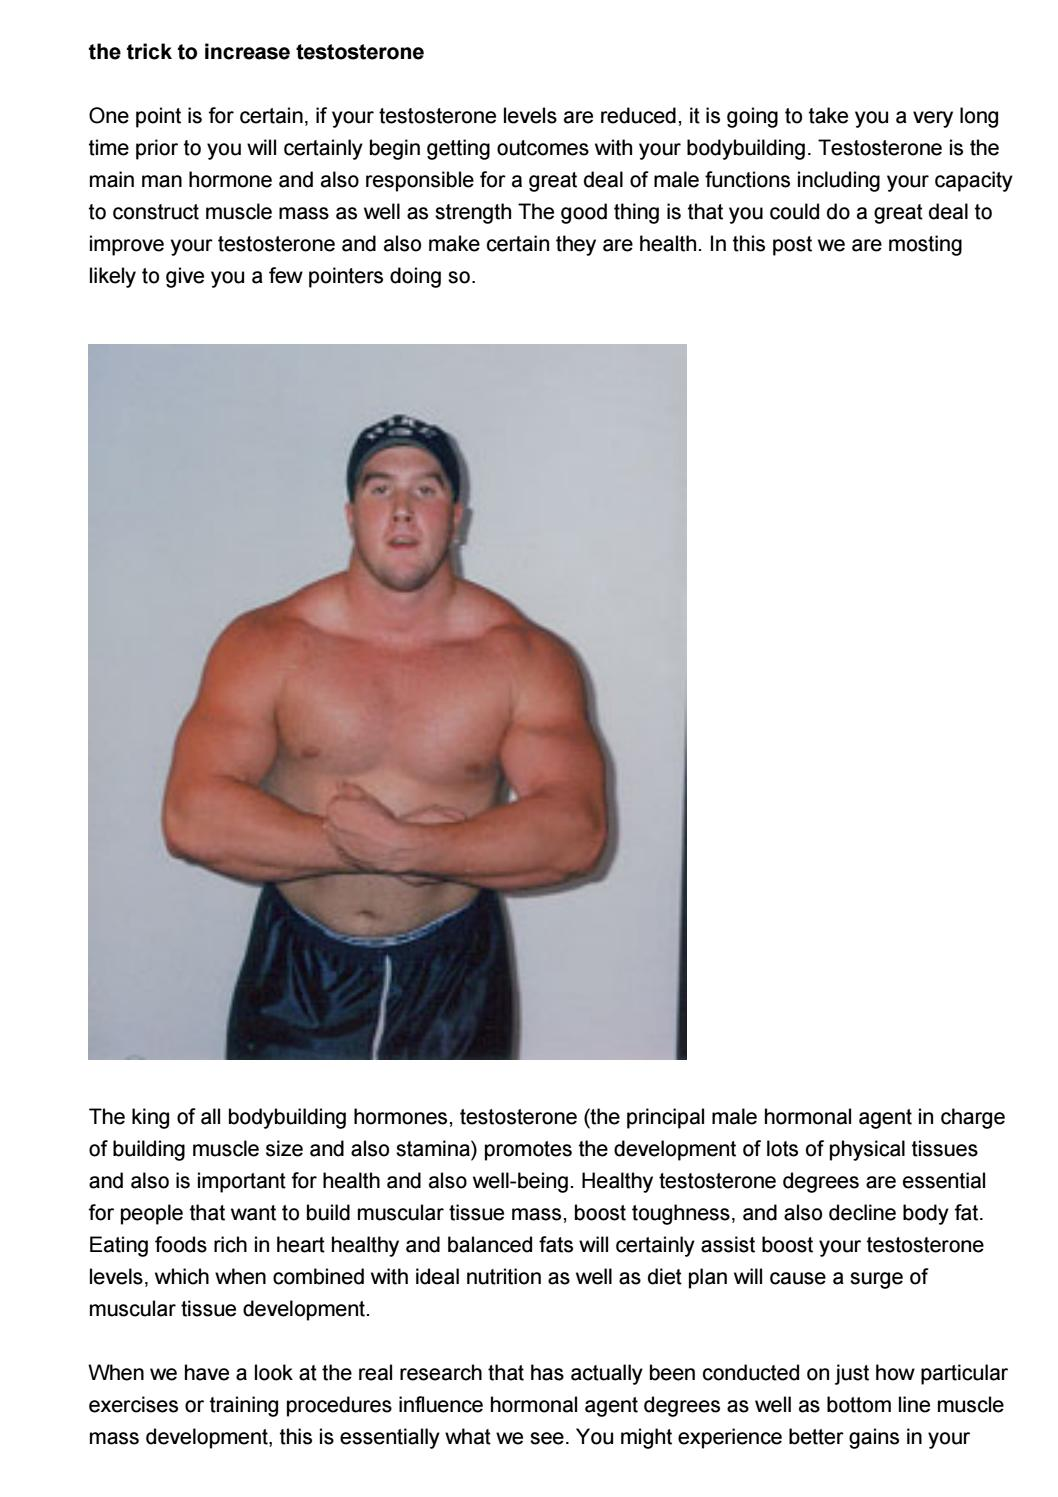 What influences the increase in muscle mass